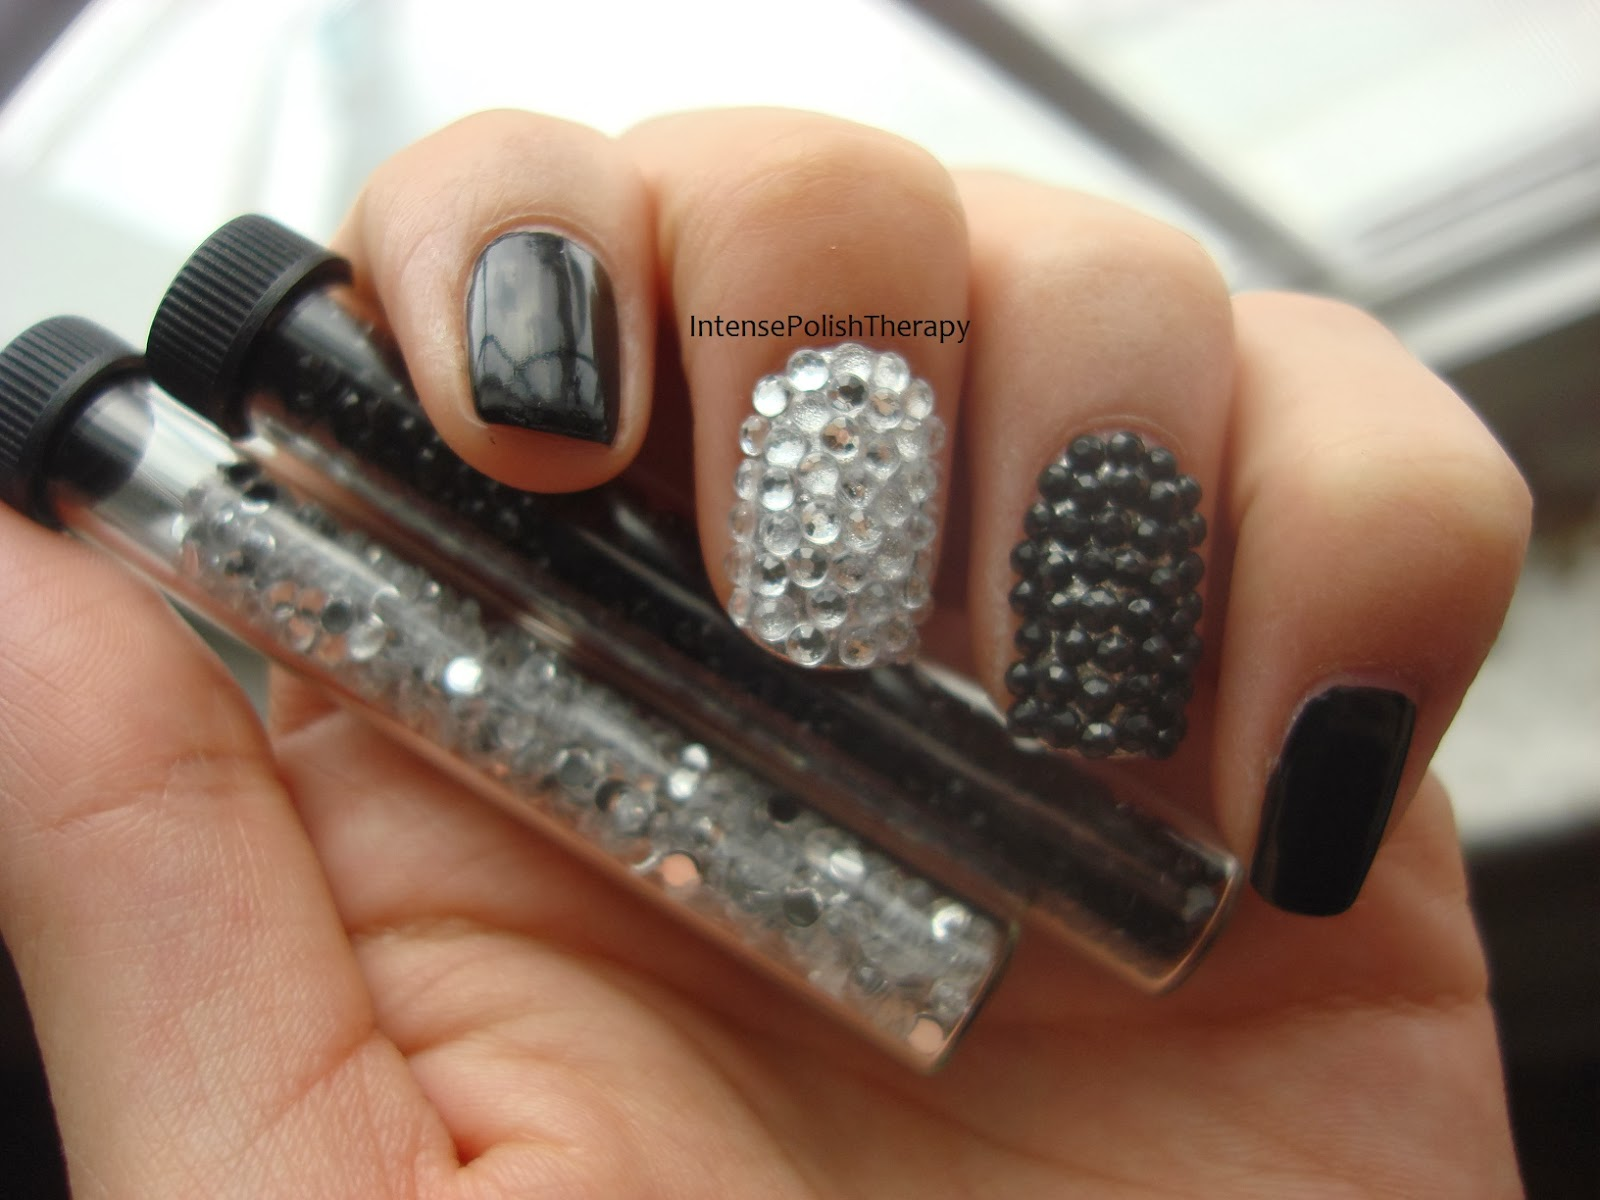 Intense polish therapy sally hansen i love nail art stud kit so for this part i used the new i love nail art pens that come in a large variety of colours theyre very vivid prinsesfo Images